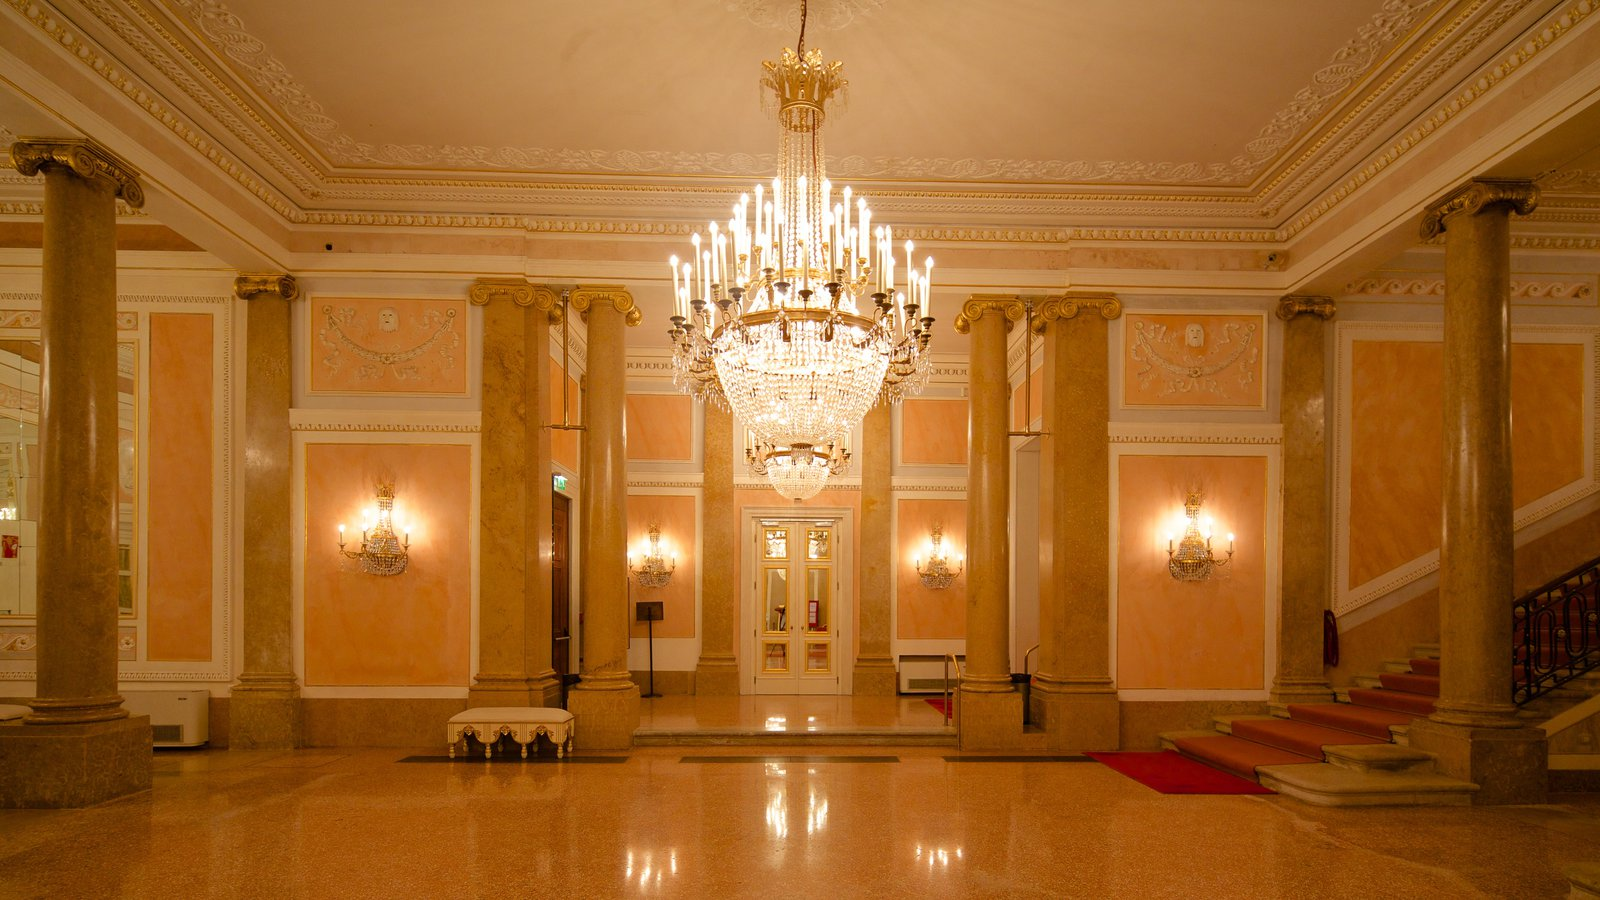 La Fenice Opera House showing heritage architecture and interior views